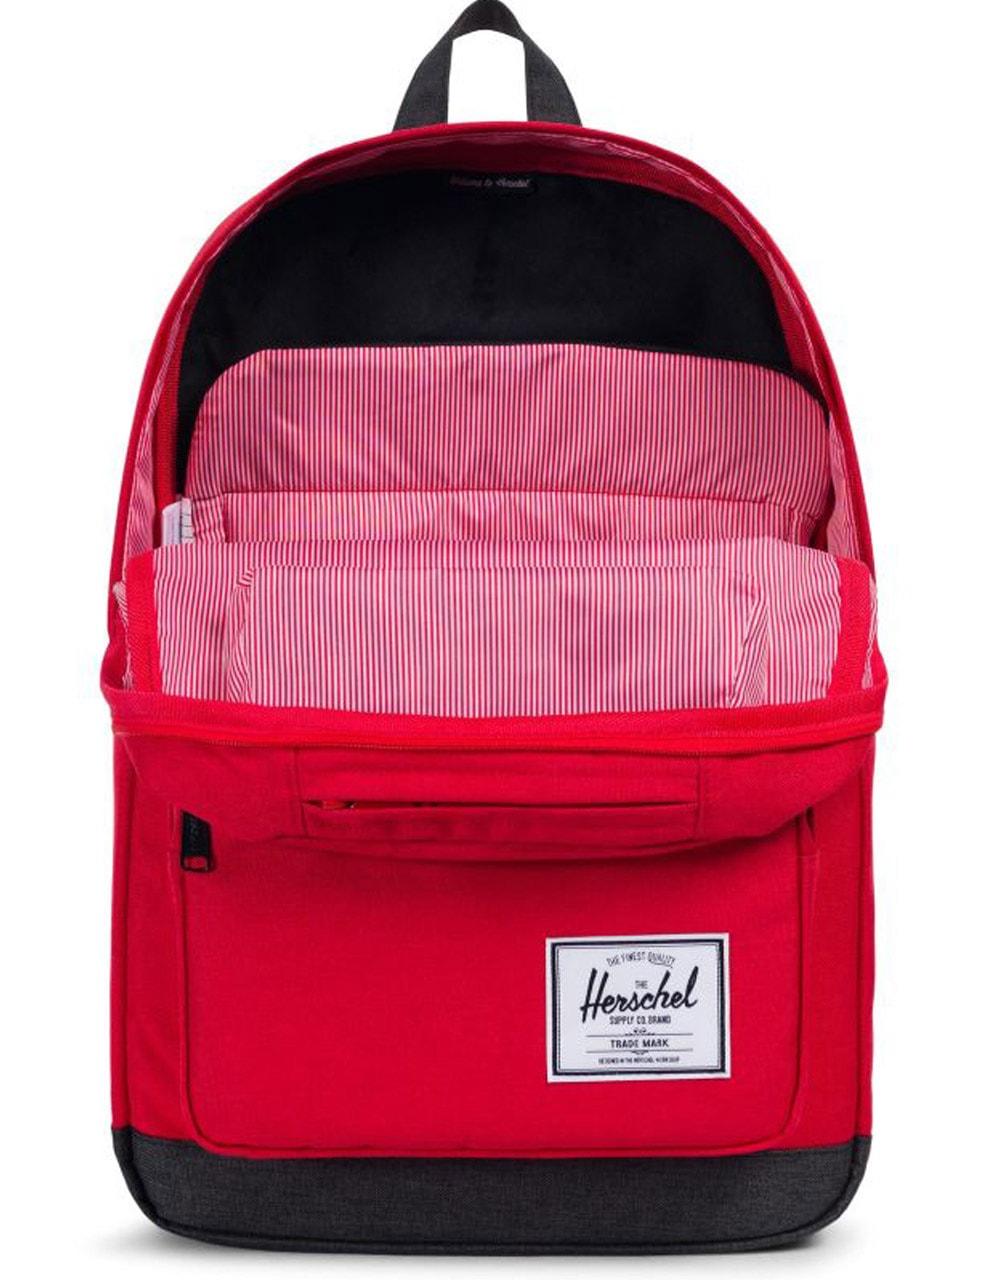 Рюкзак Herschel Pop Quiz Barbados Cherry Crosshatch/Black  Crosshatch